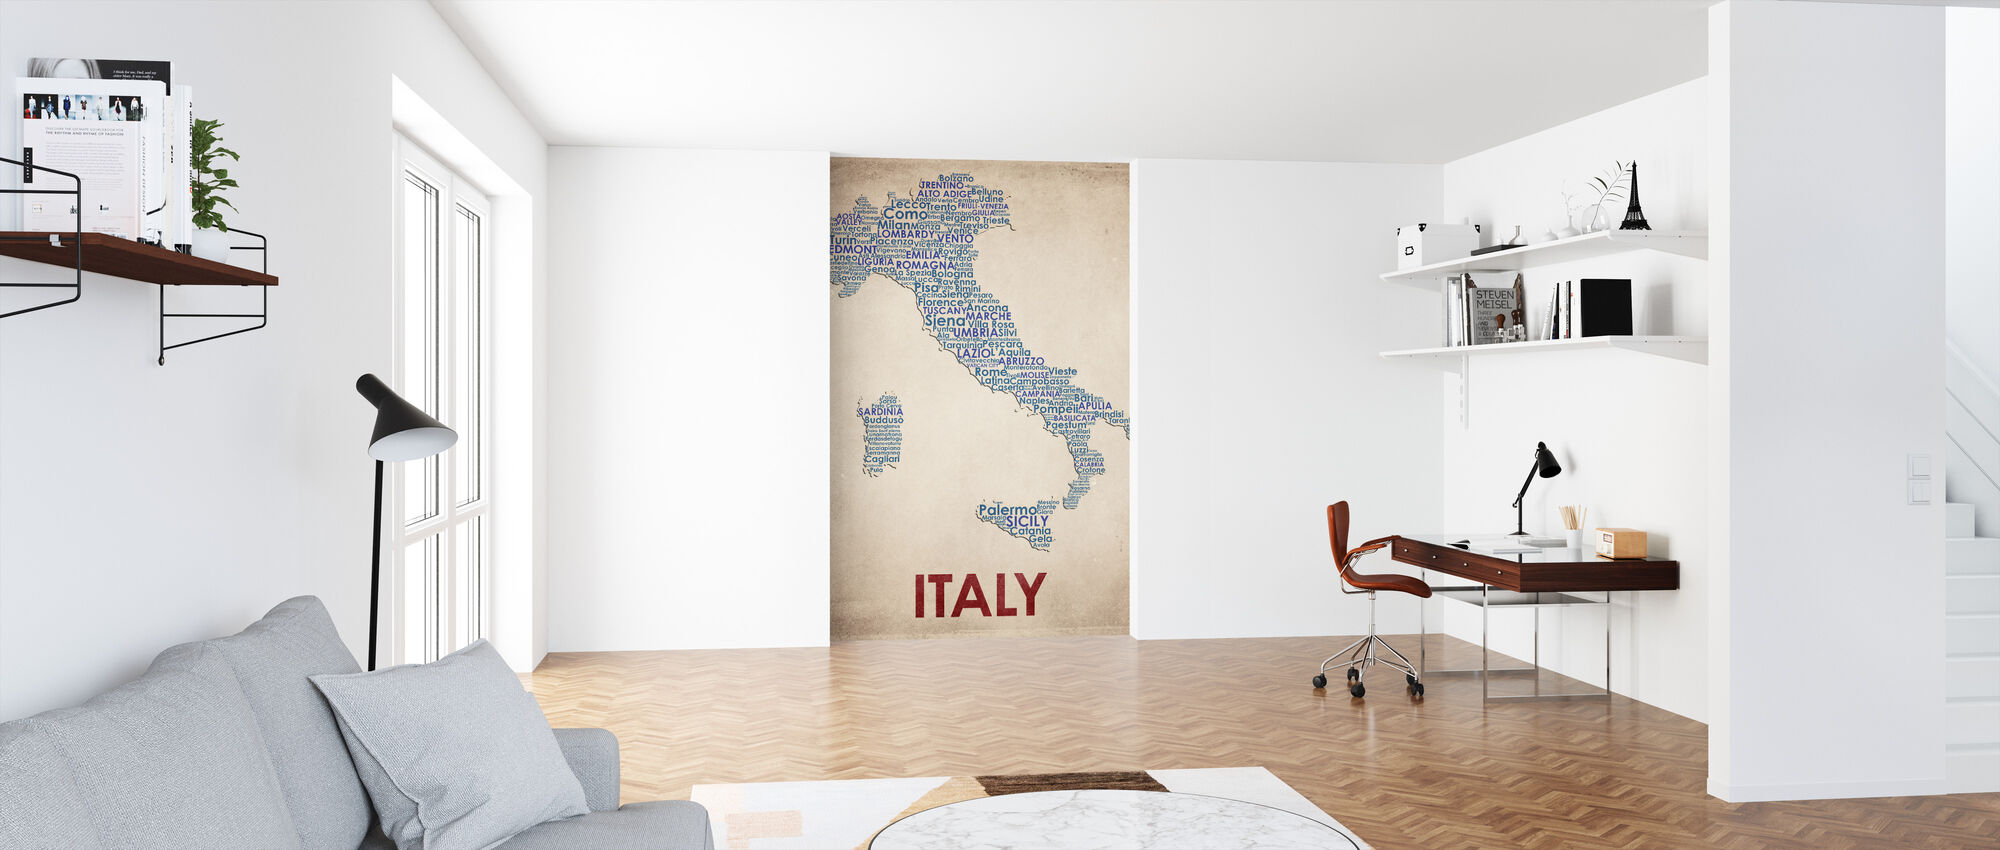 Italy Map - Wallpaper - Office